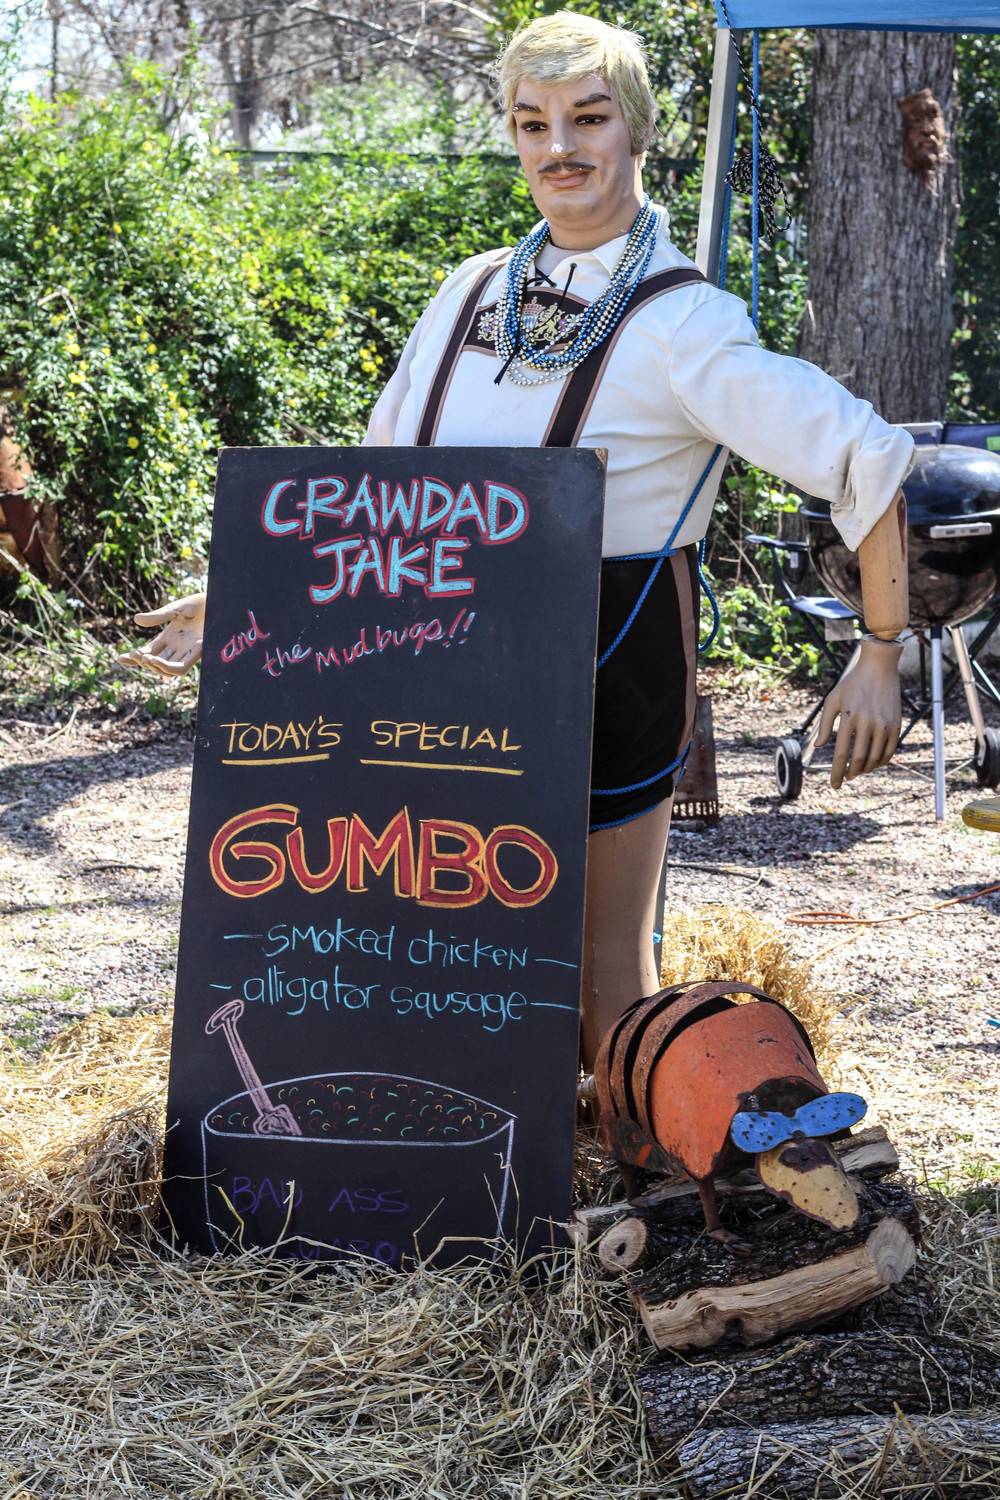 Crawdad Jake does his best to attract people to his gumbo.